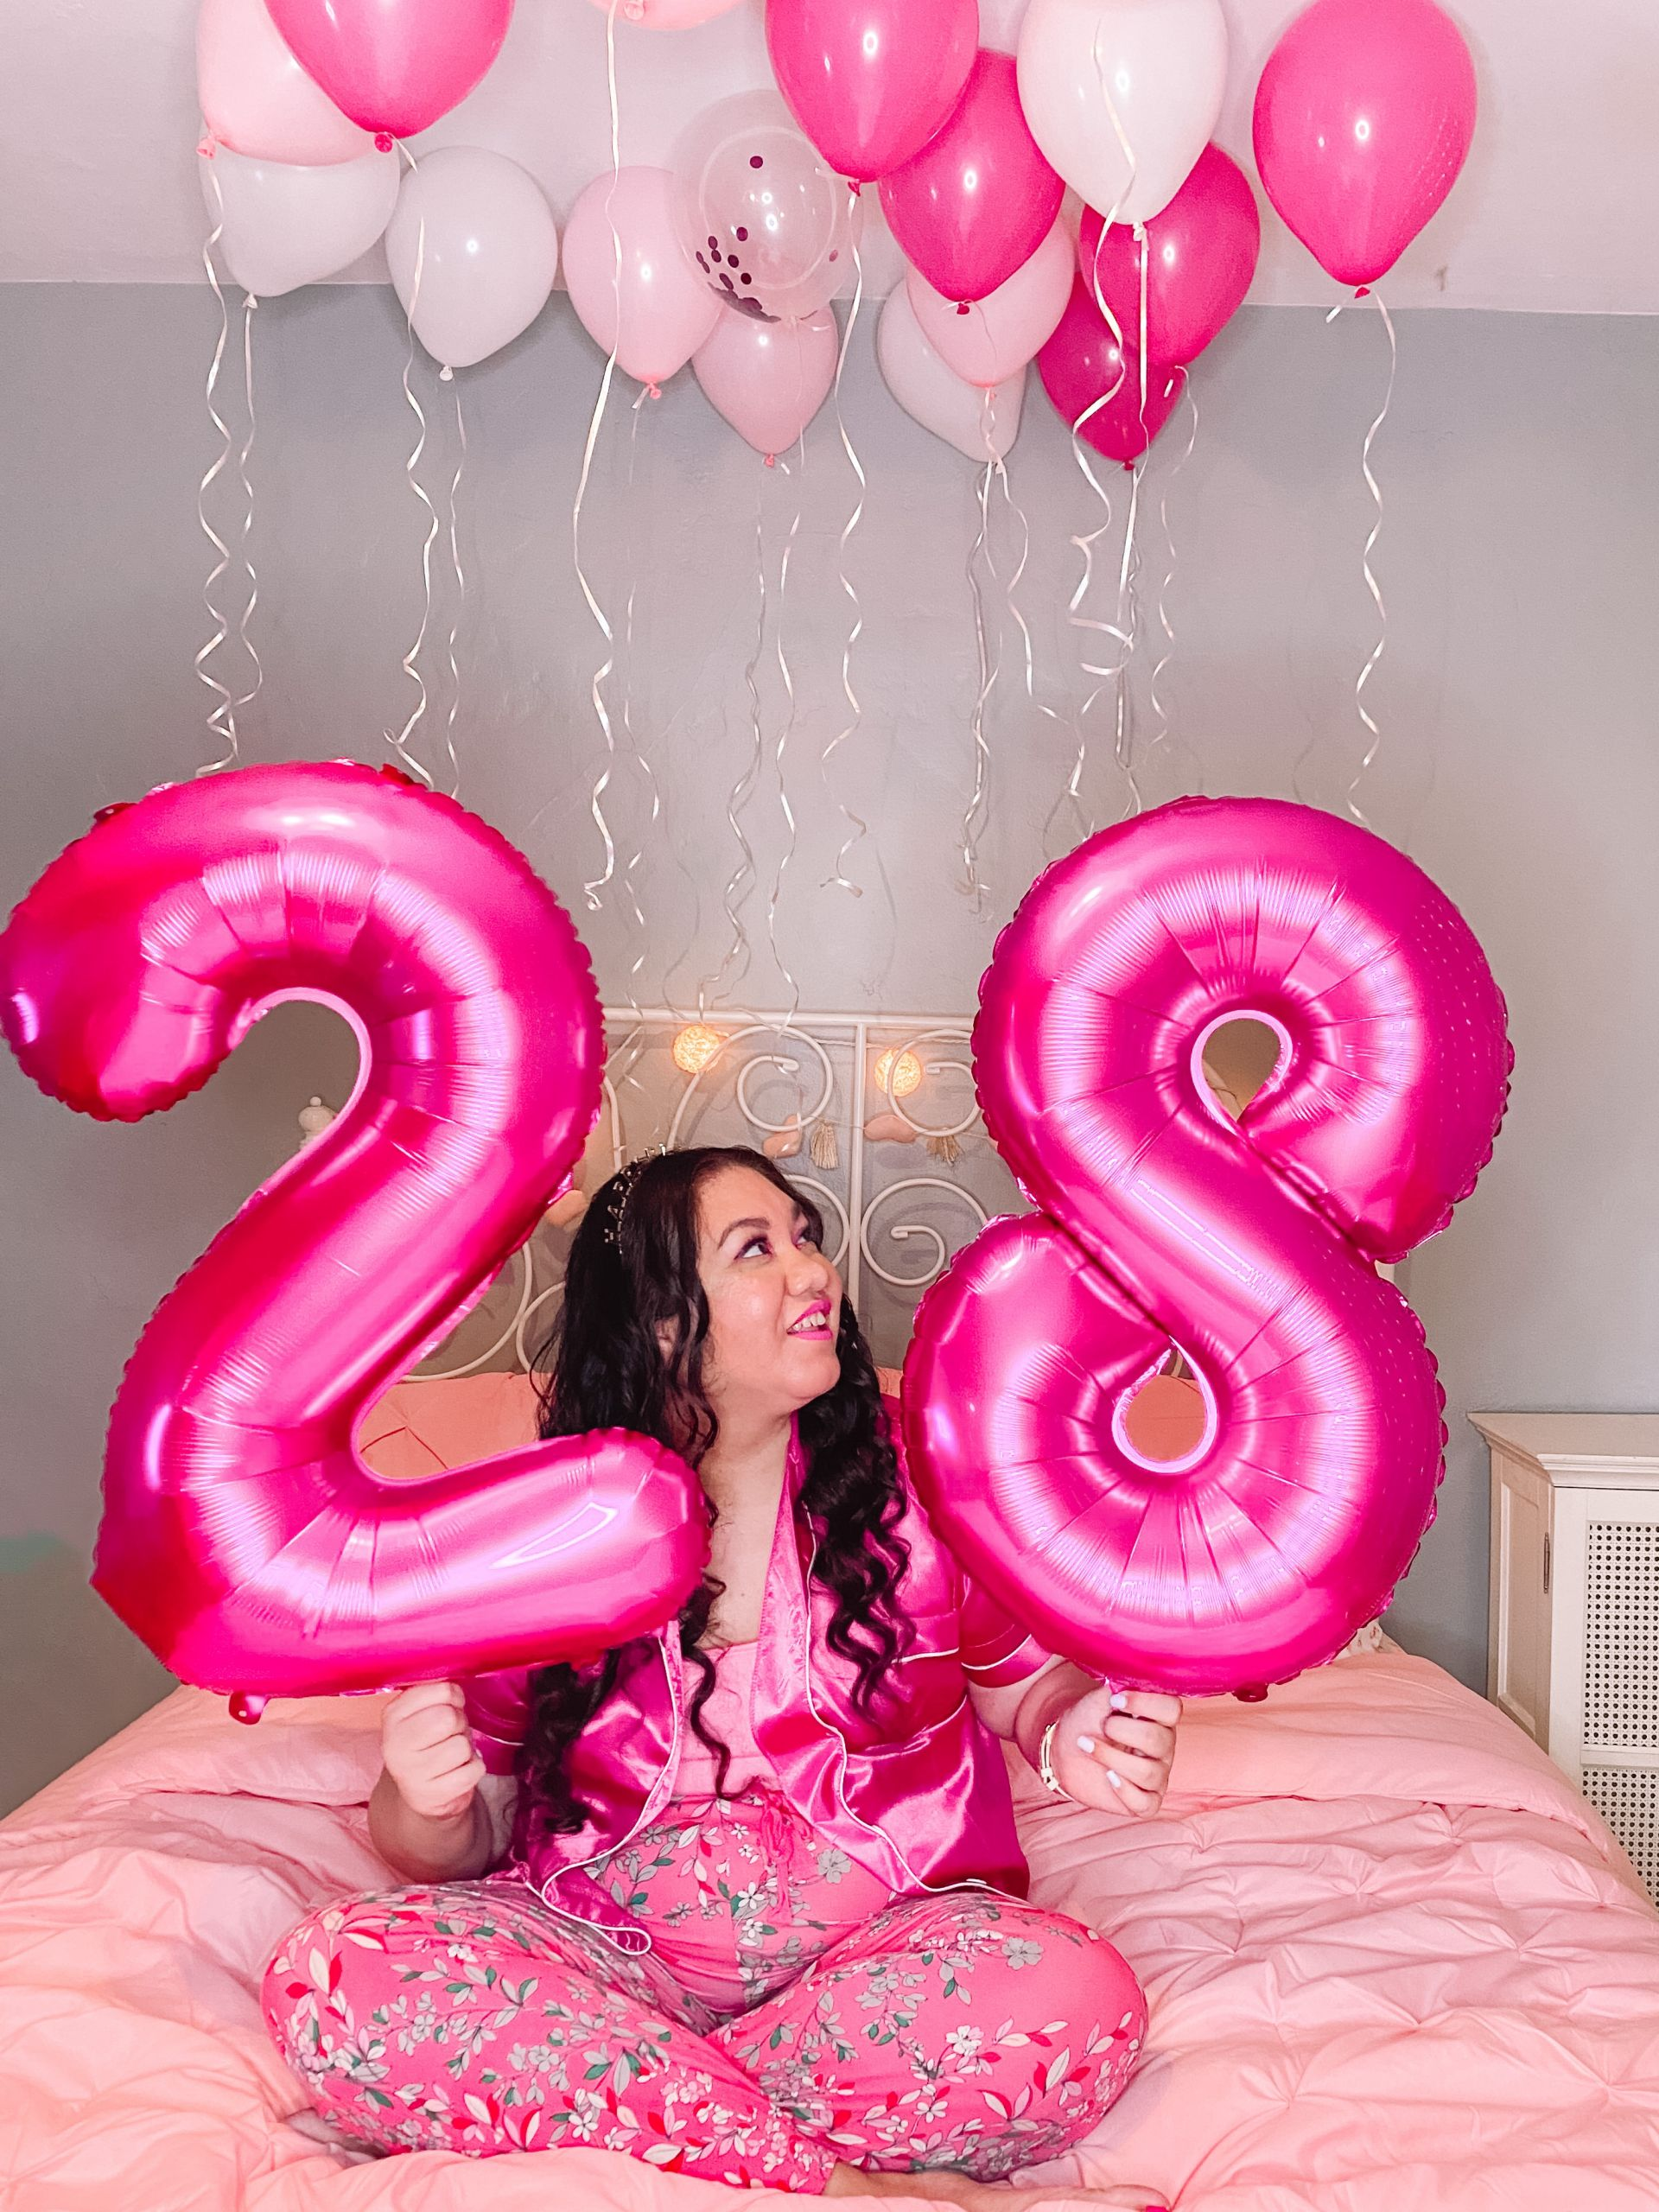 8 Differences Between 28 and 18